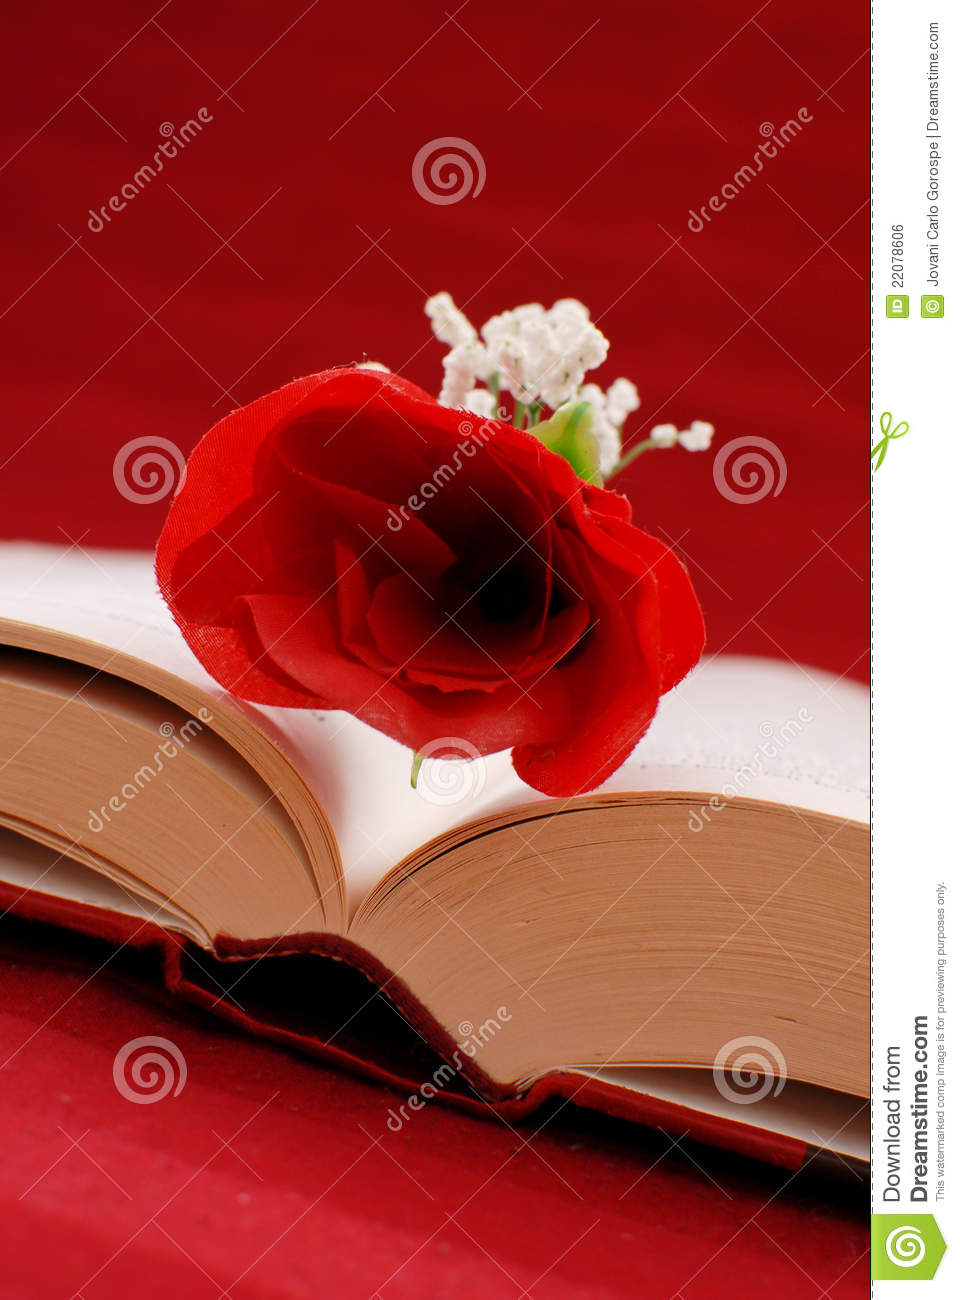 writing a romance novel If you're trying your hand at romance writing, one of the most popular fiction genres, you've come to the right place here you'll find information on developing a dynamic, engaging heroine, her perfect lover, and the conflict that separates them.